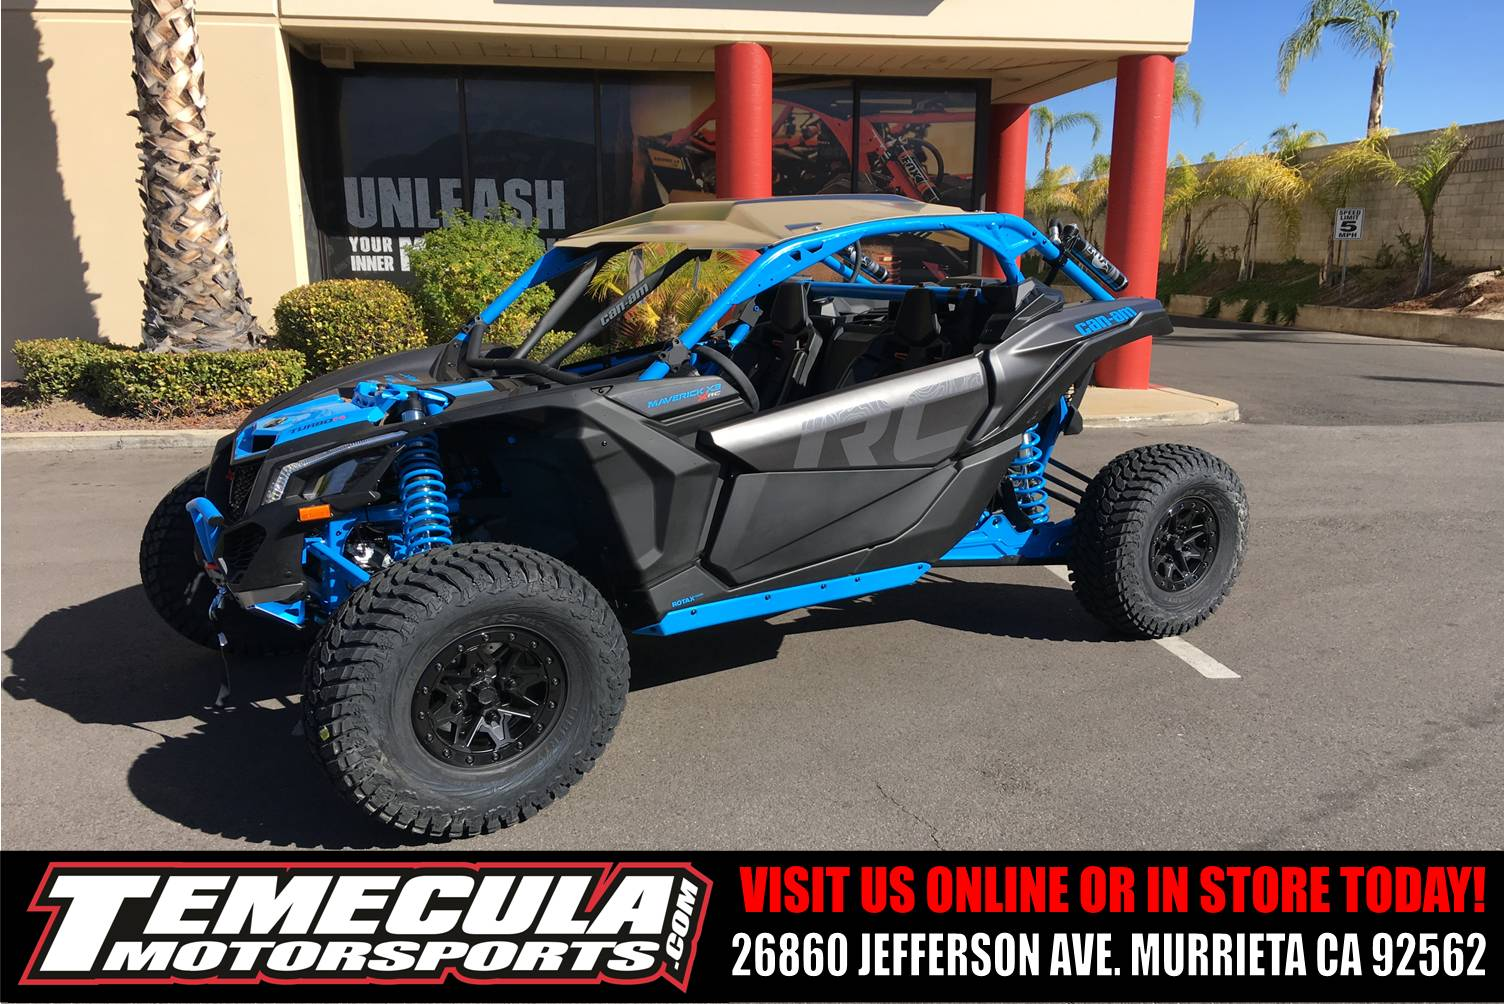 new bright rc car parts with Rc Cars Temecula Ca on Big Pete 4x4 RC Monster Truck additionally 190755081931 as well 790659446 further Rc Trucks At Walmart Remote Control Cars Trucks further 32521039484.